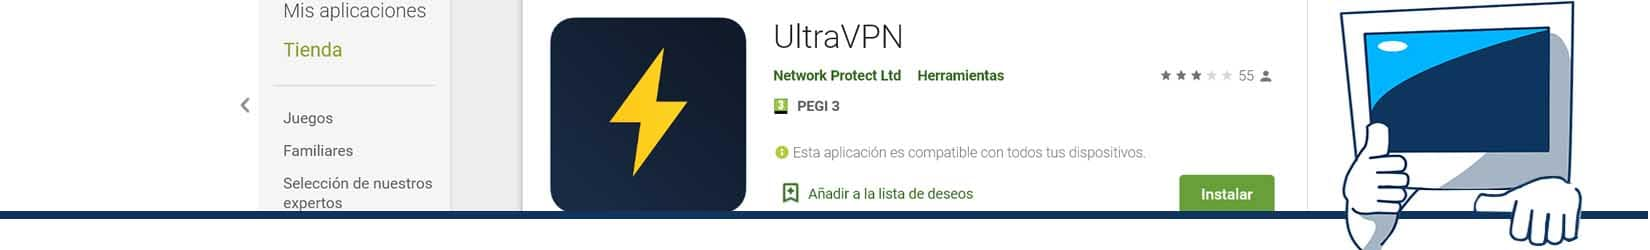 ultravpn para iphone